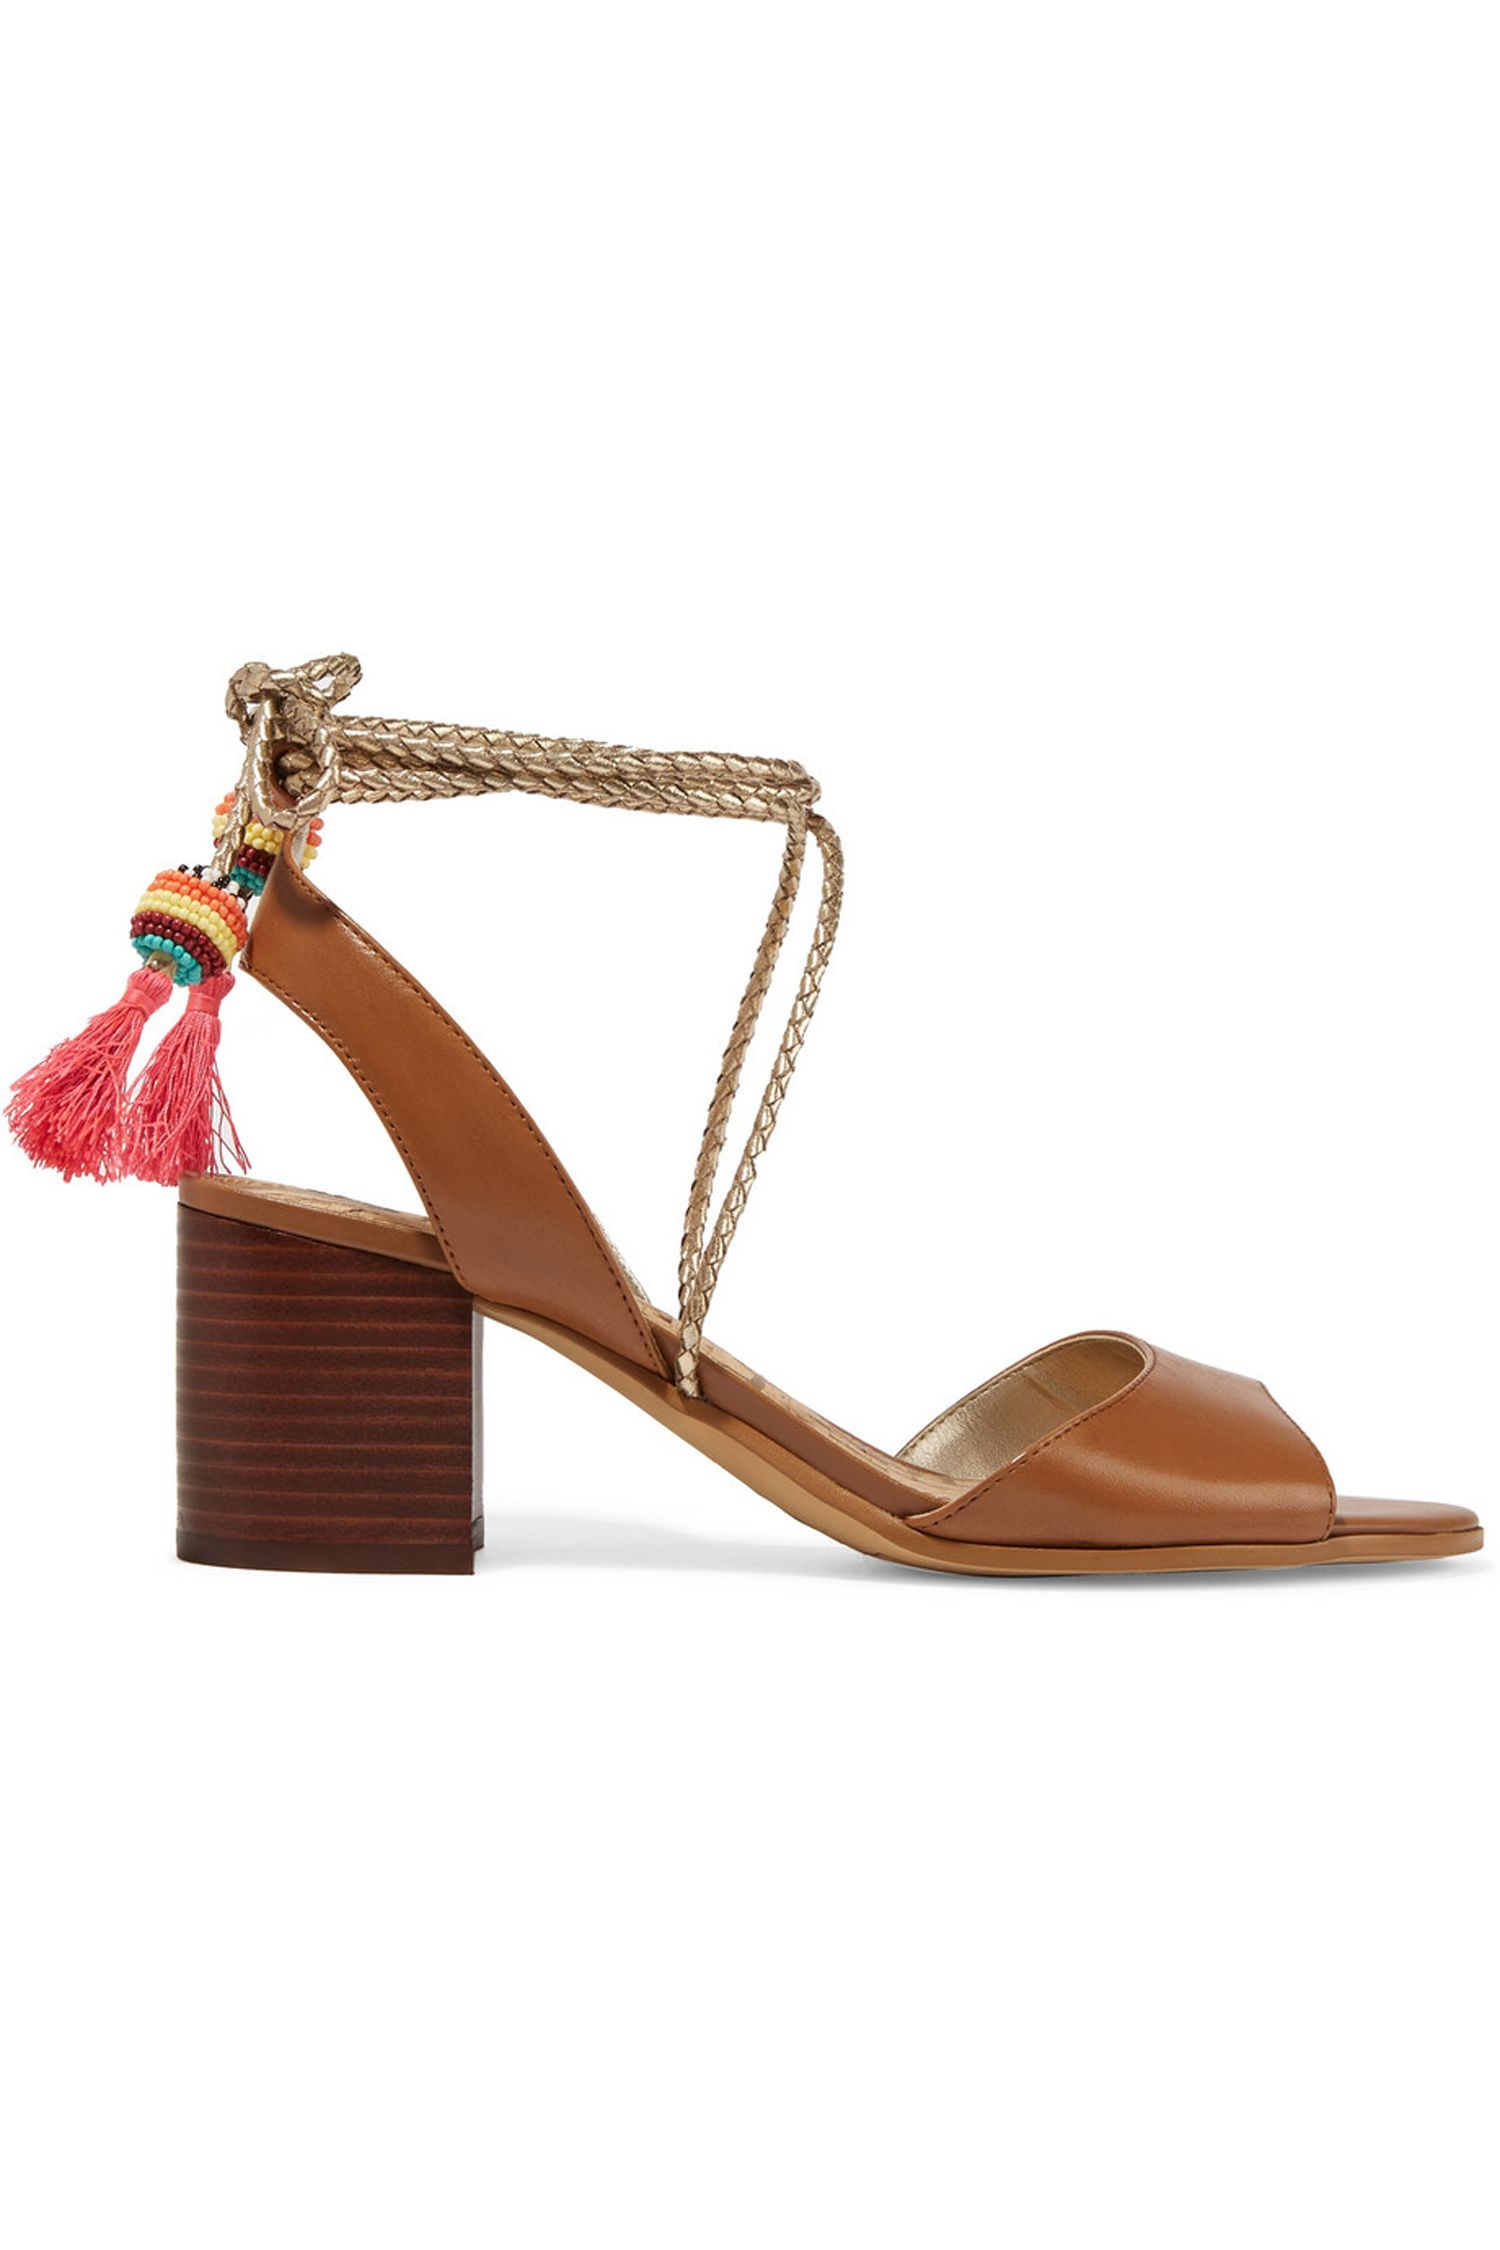 "<p>Spruce up a standard neutral with a little somethin' somethin'—like tassles. This pair, with a 2.5-inch heel, is ideal for <del>strolling</del> running around, and the brown leather goes with anything in your closet, basically.</p><p><em>Sam Edelman Shani Tasseled Leather Sandals, $150&#x3B; </em><a href=""https://www.net-a-porter.com/us/en/product/667458/sam_edelman/shani-tasseled-leather-sandals"" target=""_blank""><em>net-a-porter.com</em></a></p>"